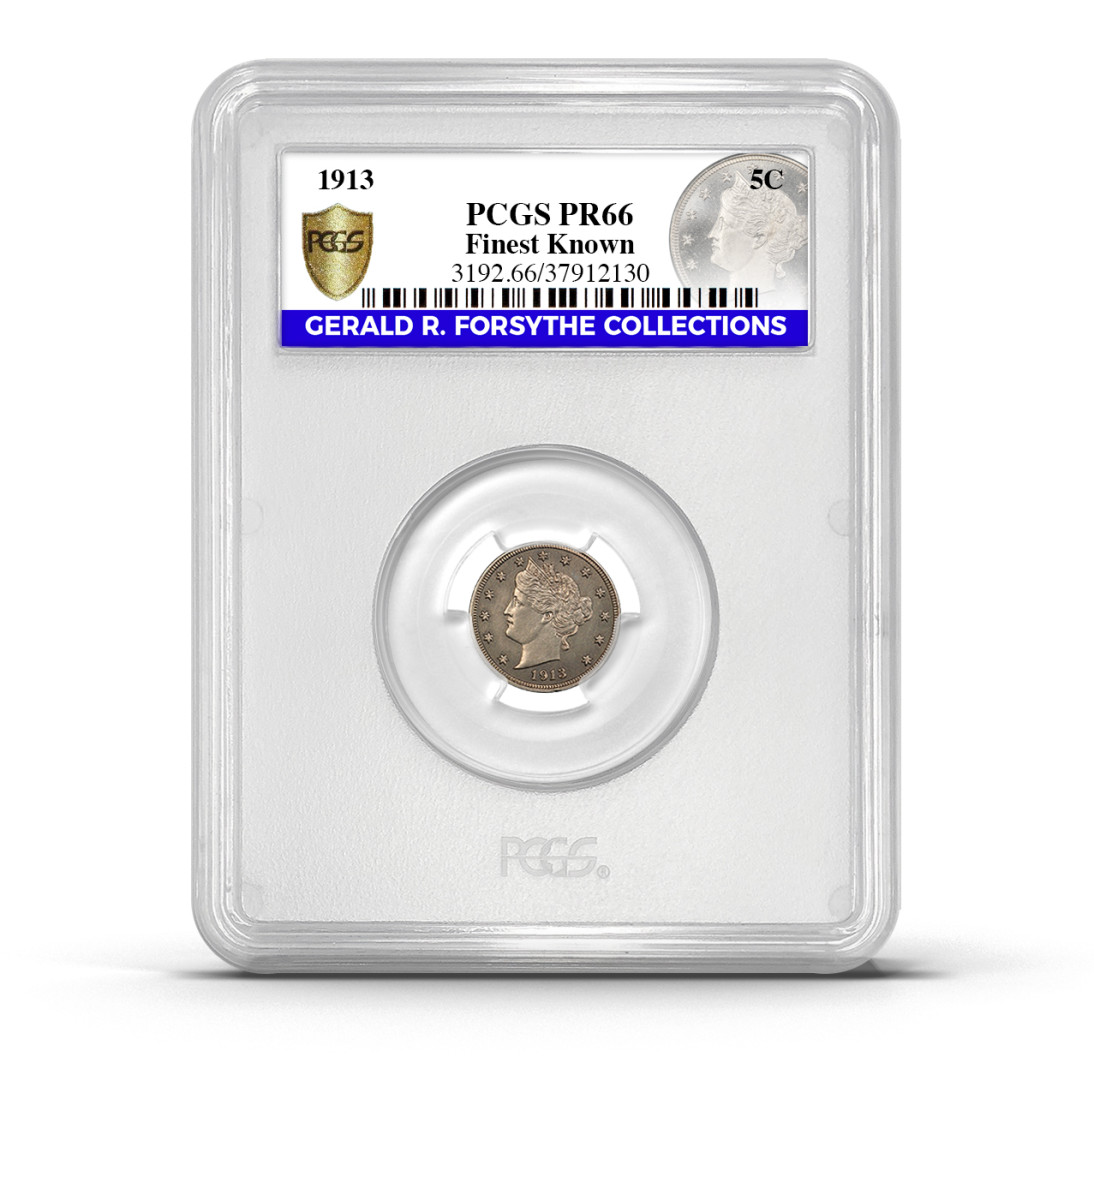 The finest known 1913 Liberty Head nickel is now in a PCGS Rarities holder with an exclusive, custom label for the Gerald R. Forsythe Collections. (Photo credit: PCGS.)